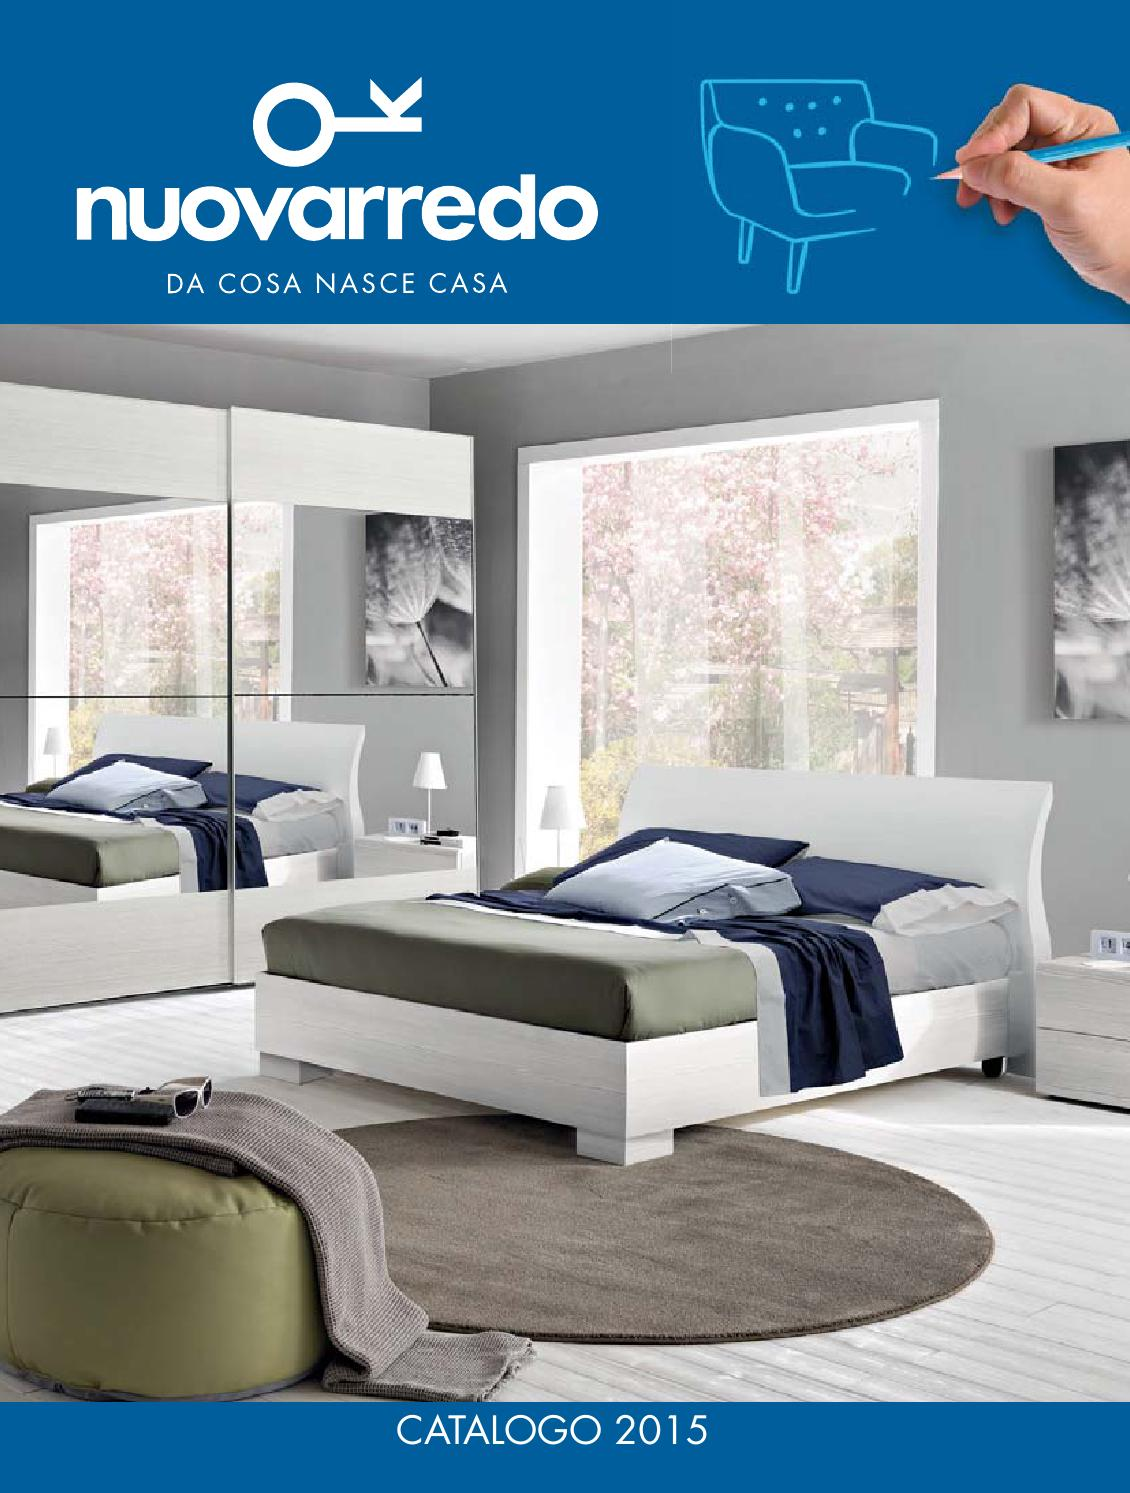 Nuovarredo Catalogo 2015 By Mobilpro Issuu